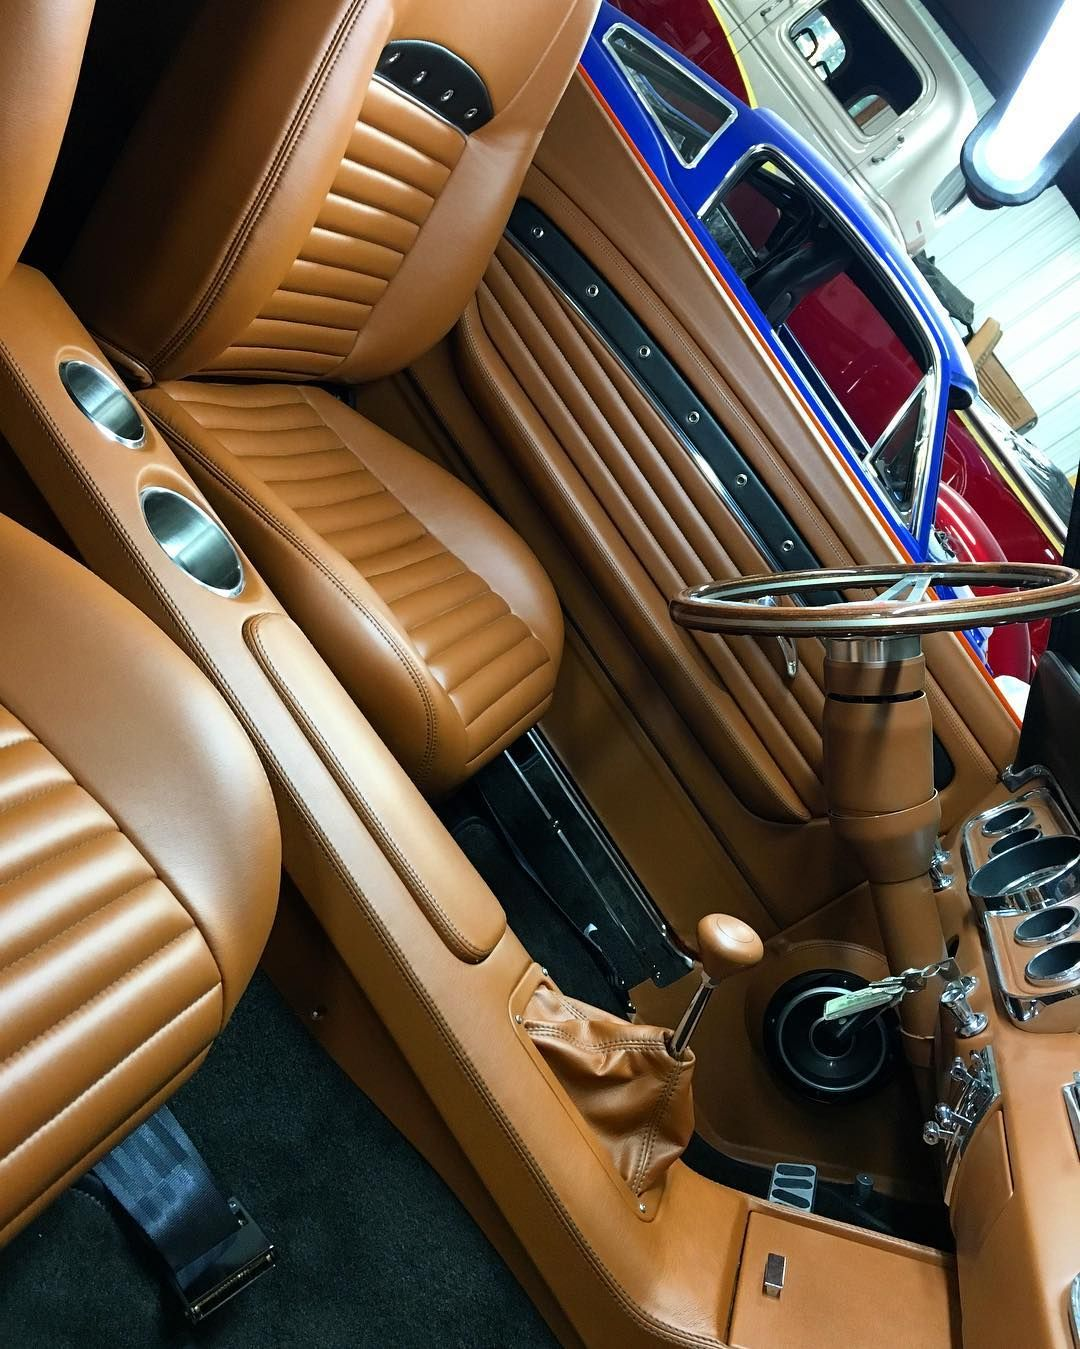 Car interior brown - 65 Mustang Fastback Car Interior Brown And Black Interior Custom Console And Door Panels Grommets